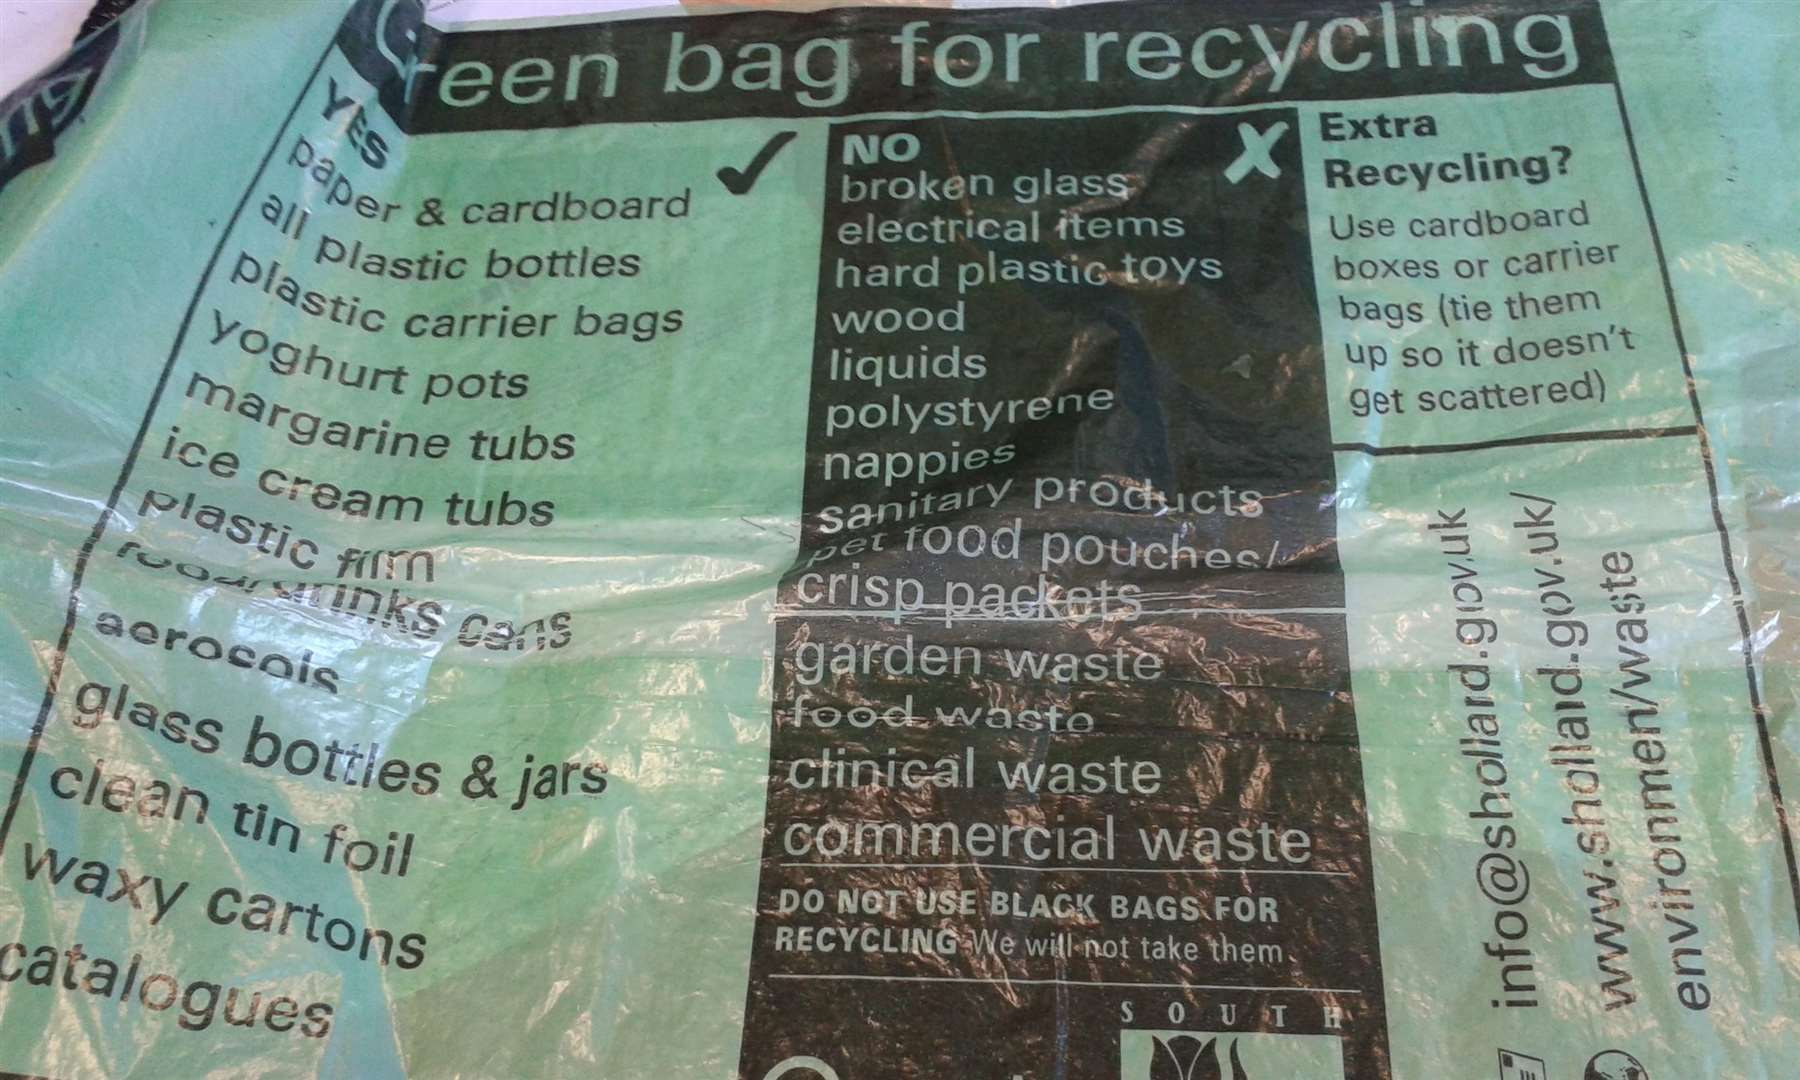 Up until now paper and card have gone into general green recycling bags provided by South Holland District Council